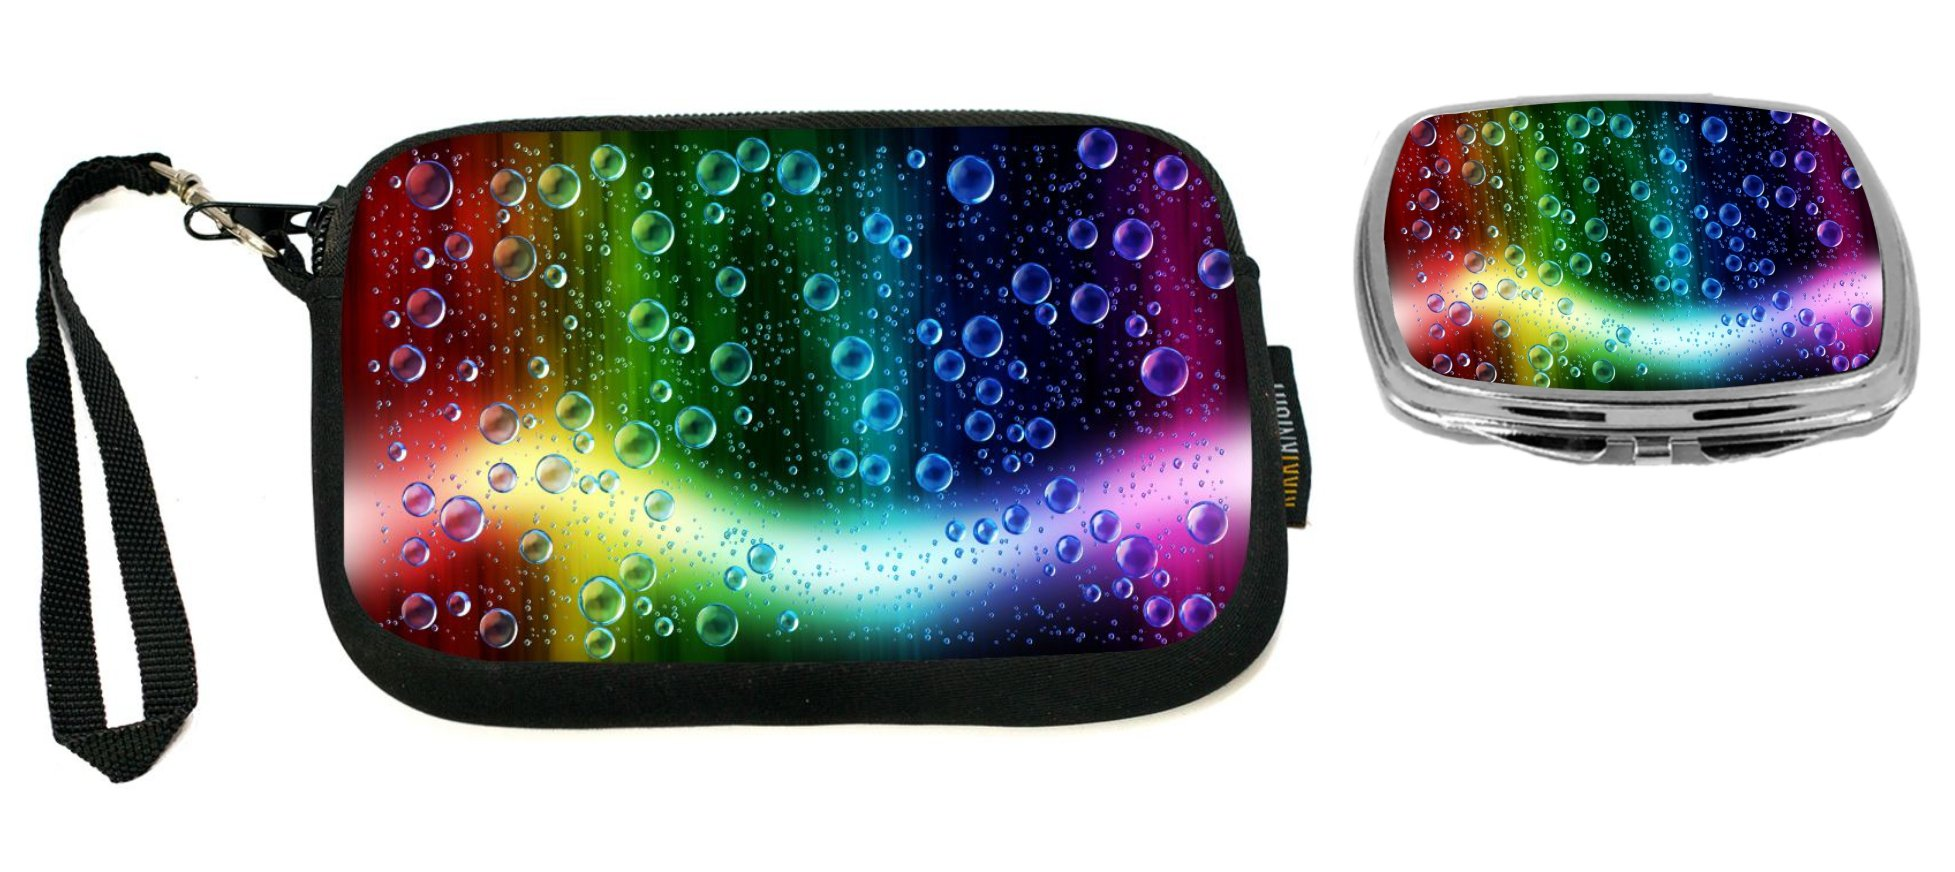 Rikki Knight Cheerful Colors Of Raindrops On The Window Design Neoprene Clutch Wristlet with Matching Square Compact Mirror